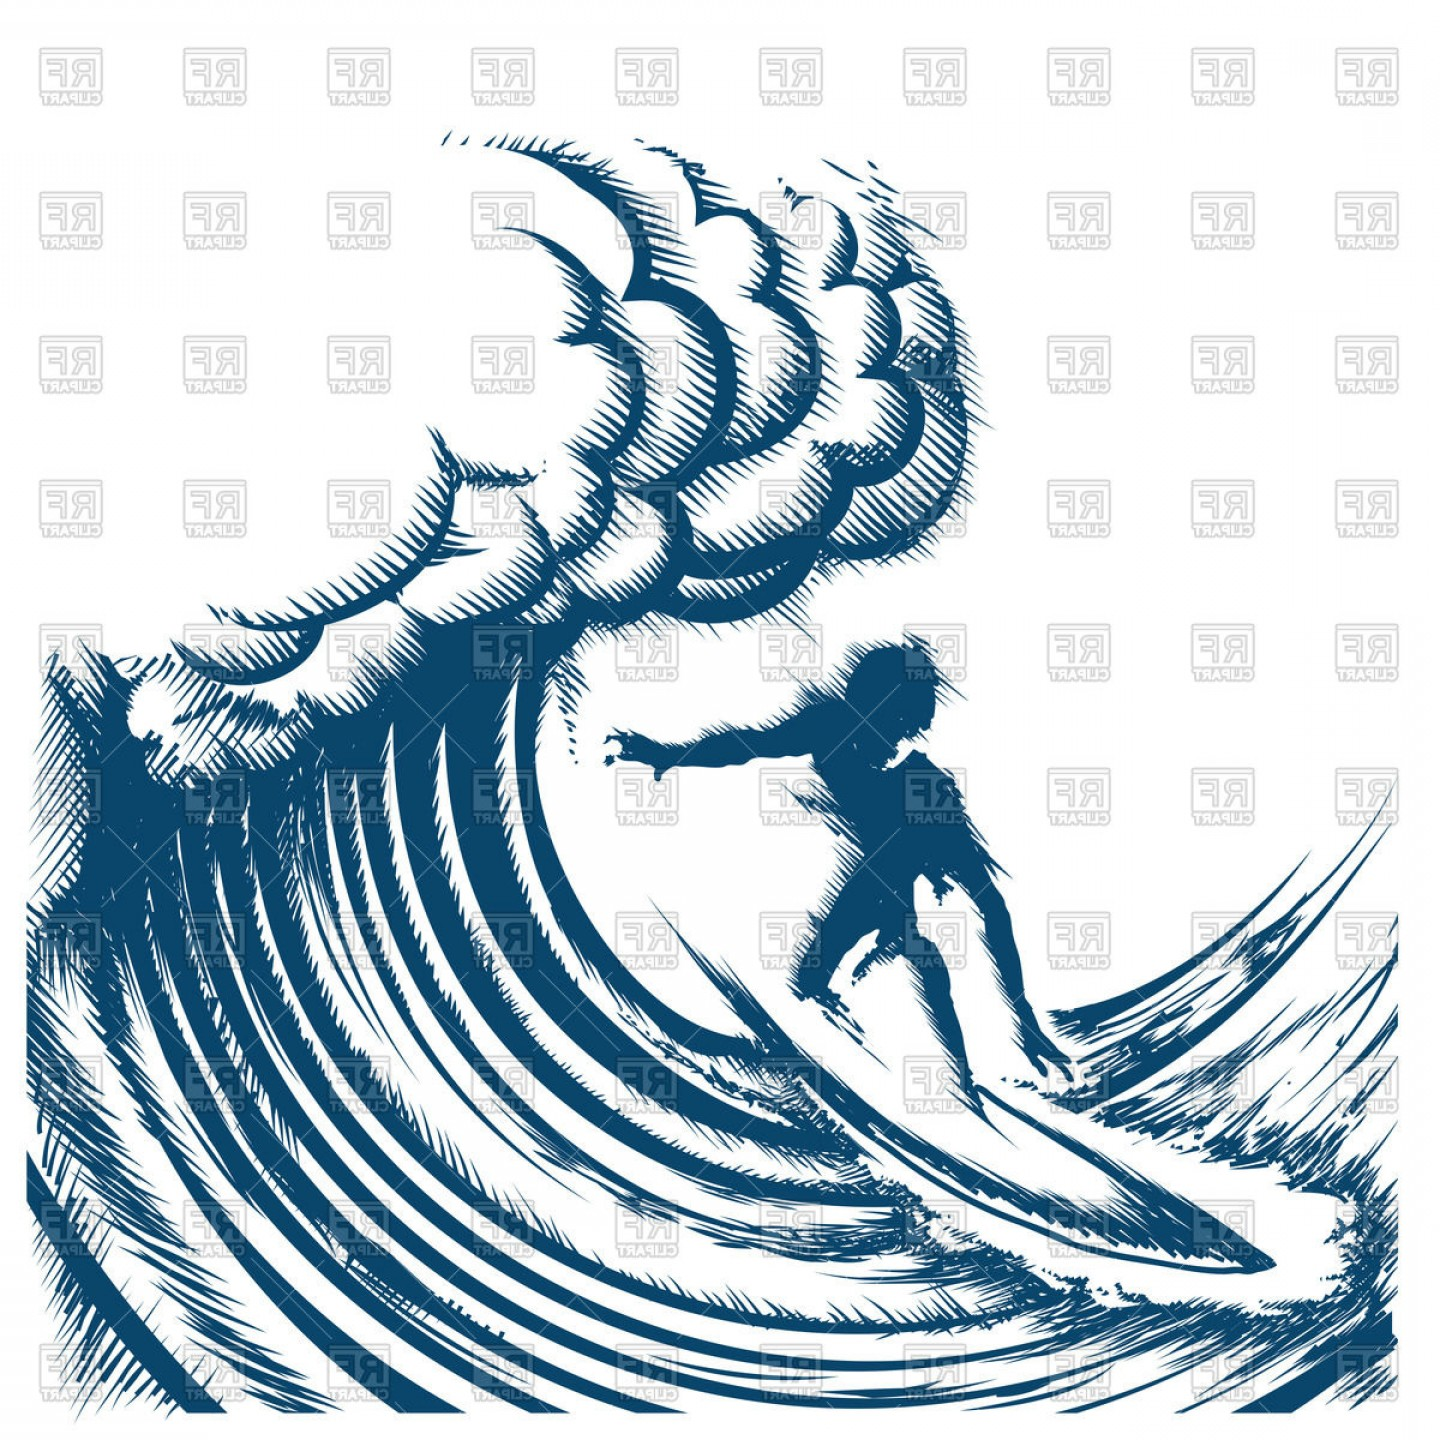 Surfing wave clipart picture royalty free stock Surfer Riding A Big Wave Engraving Style Surf Riding Image ... picture royalty free stock